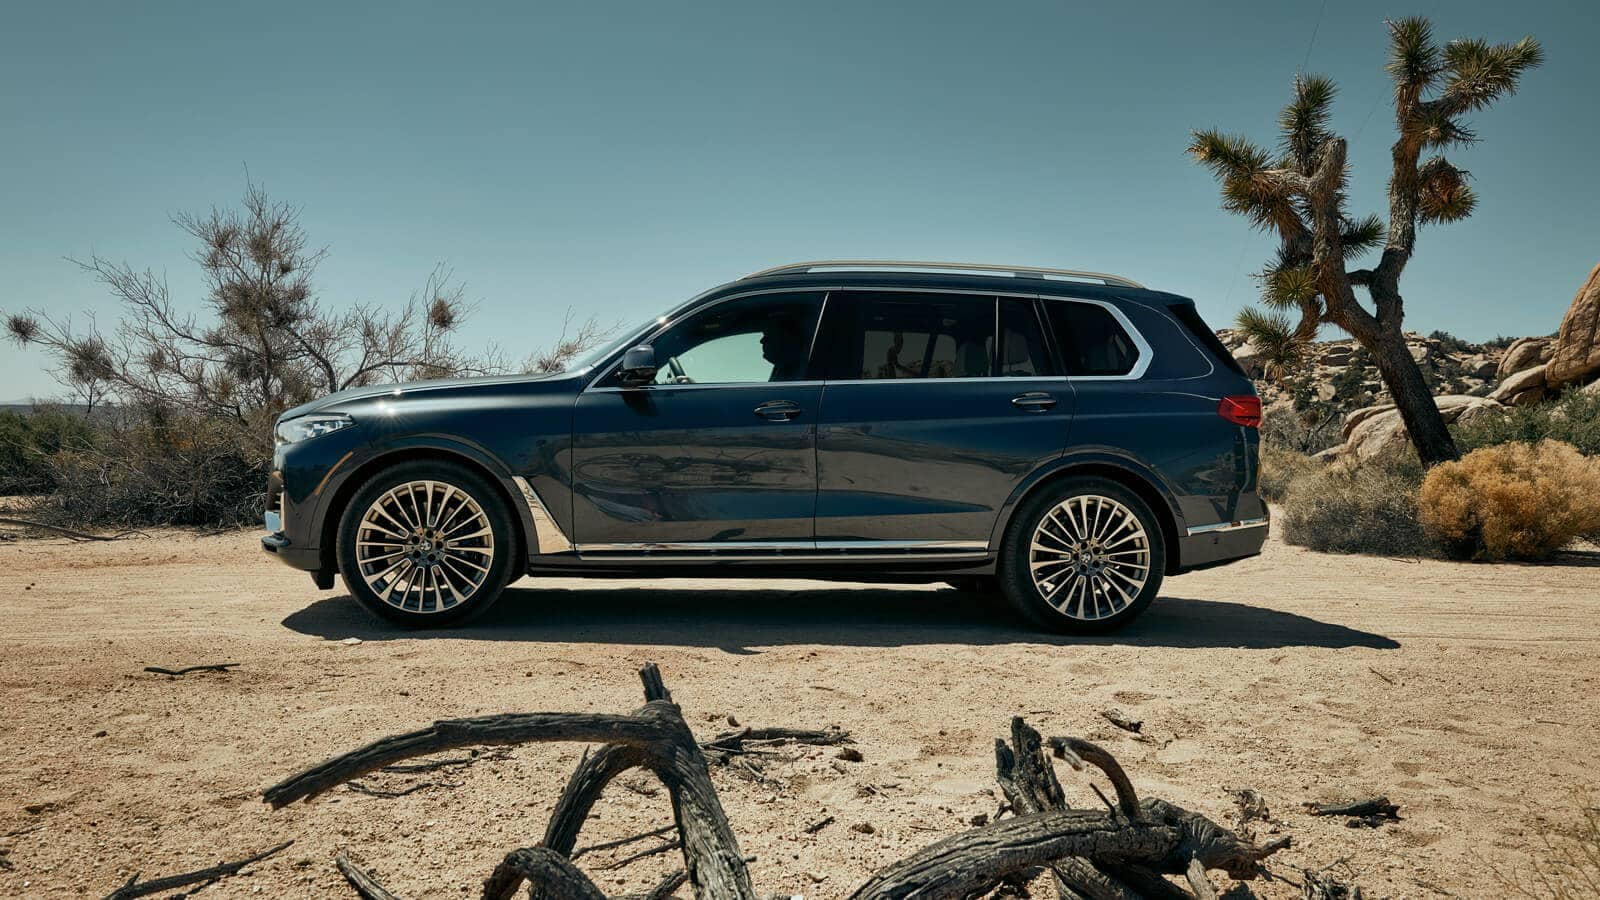 2019-BMW-X7-stunning-profile